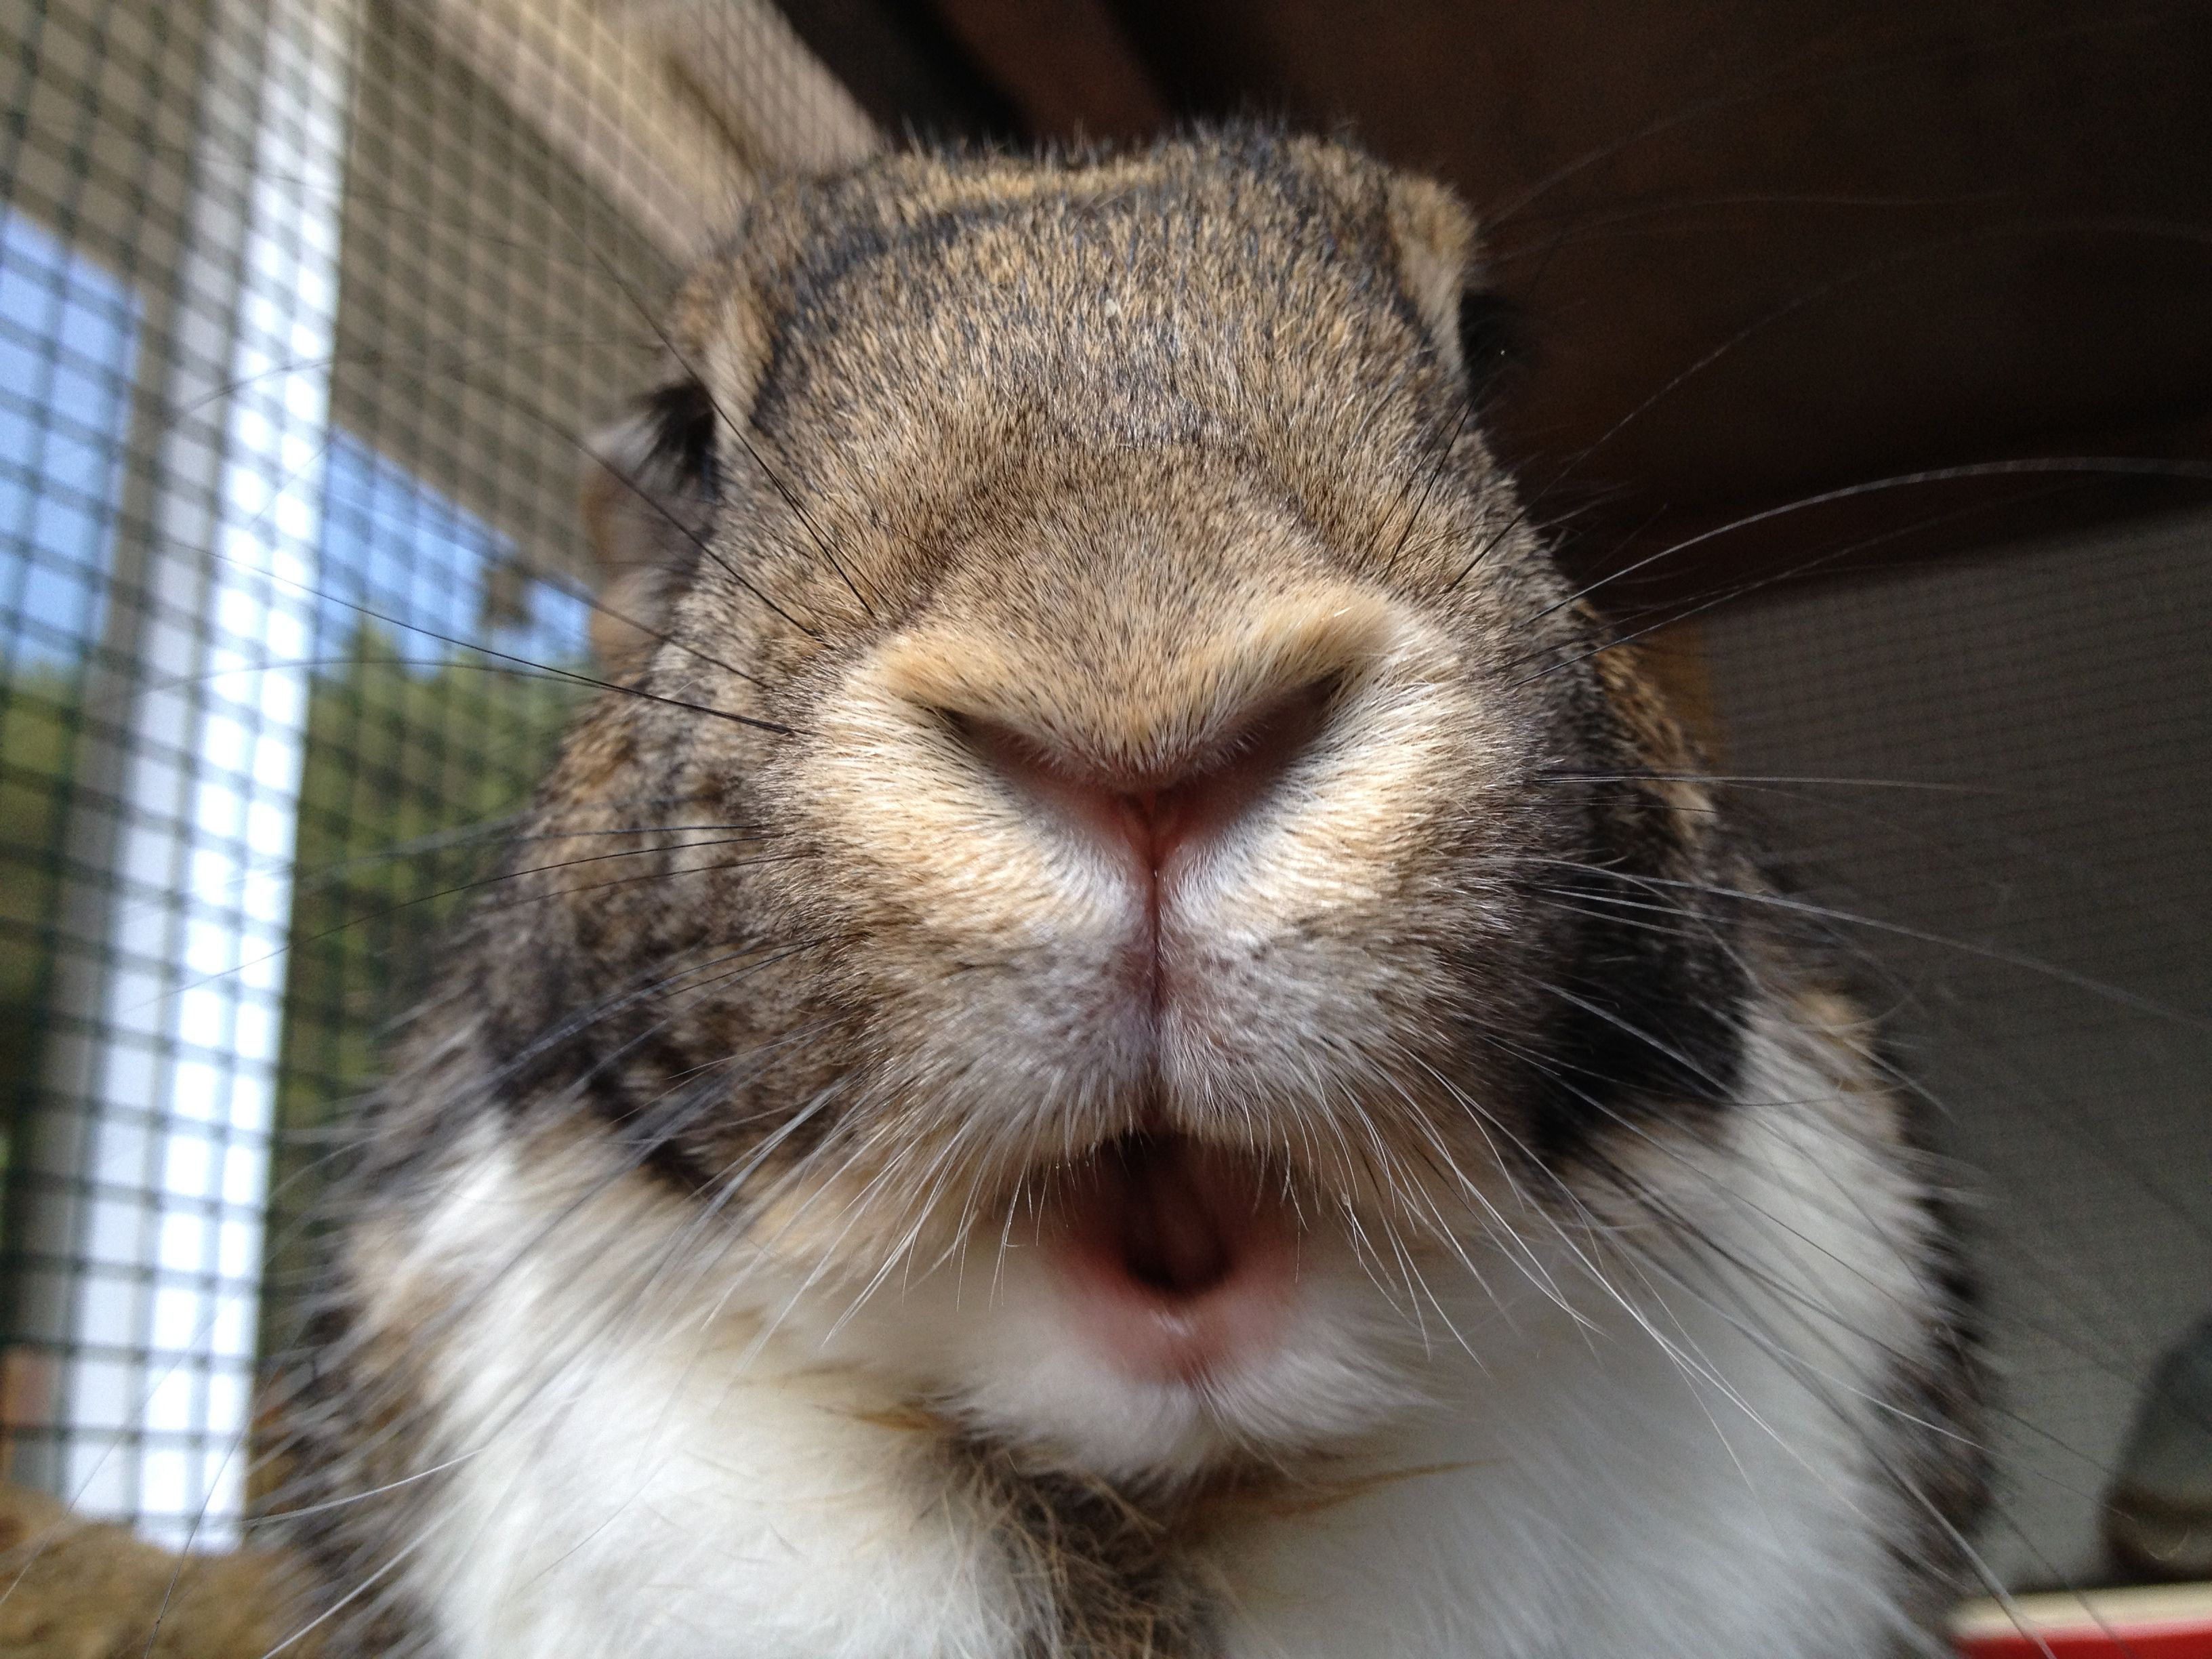 10 sounds that rabbits typically make